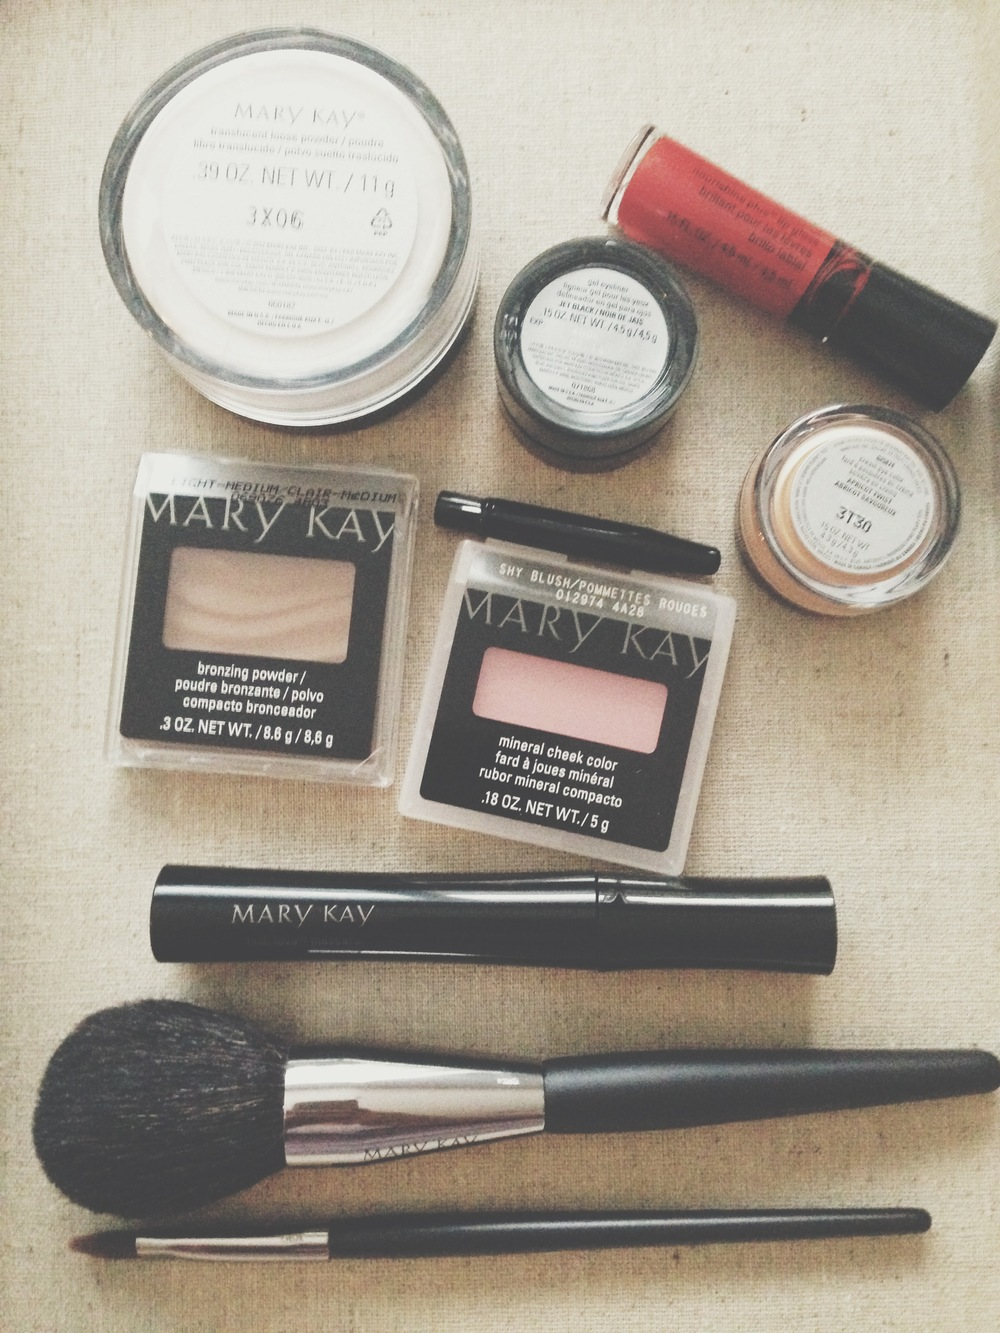 All the Mary Kay goodies from my VoxBox. #amazing